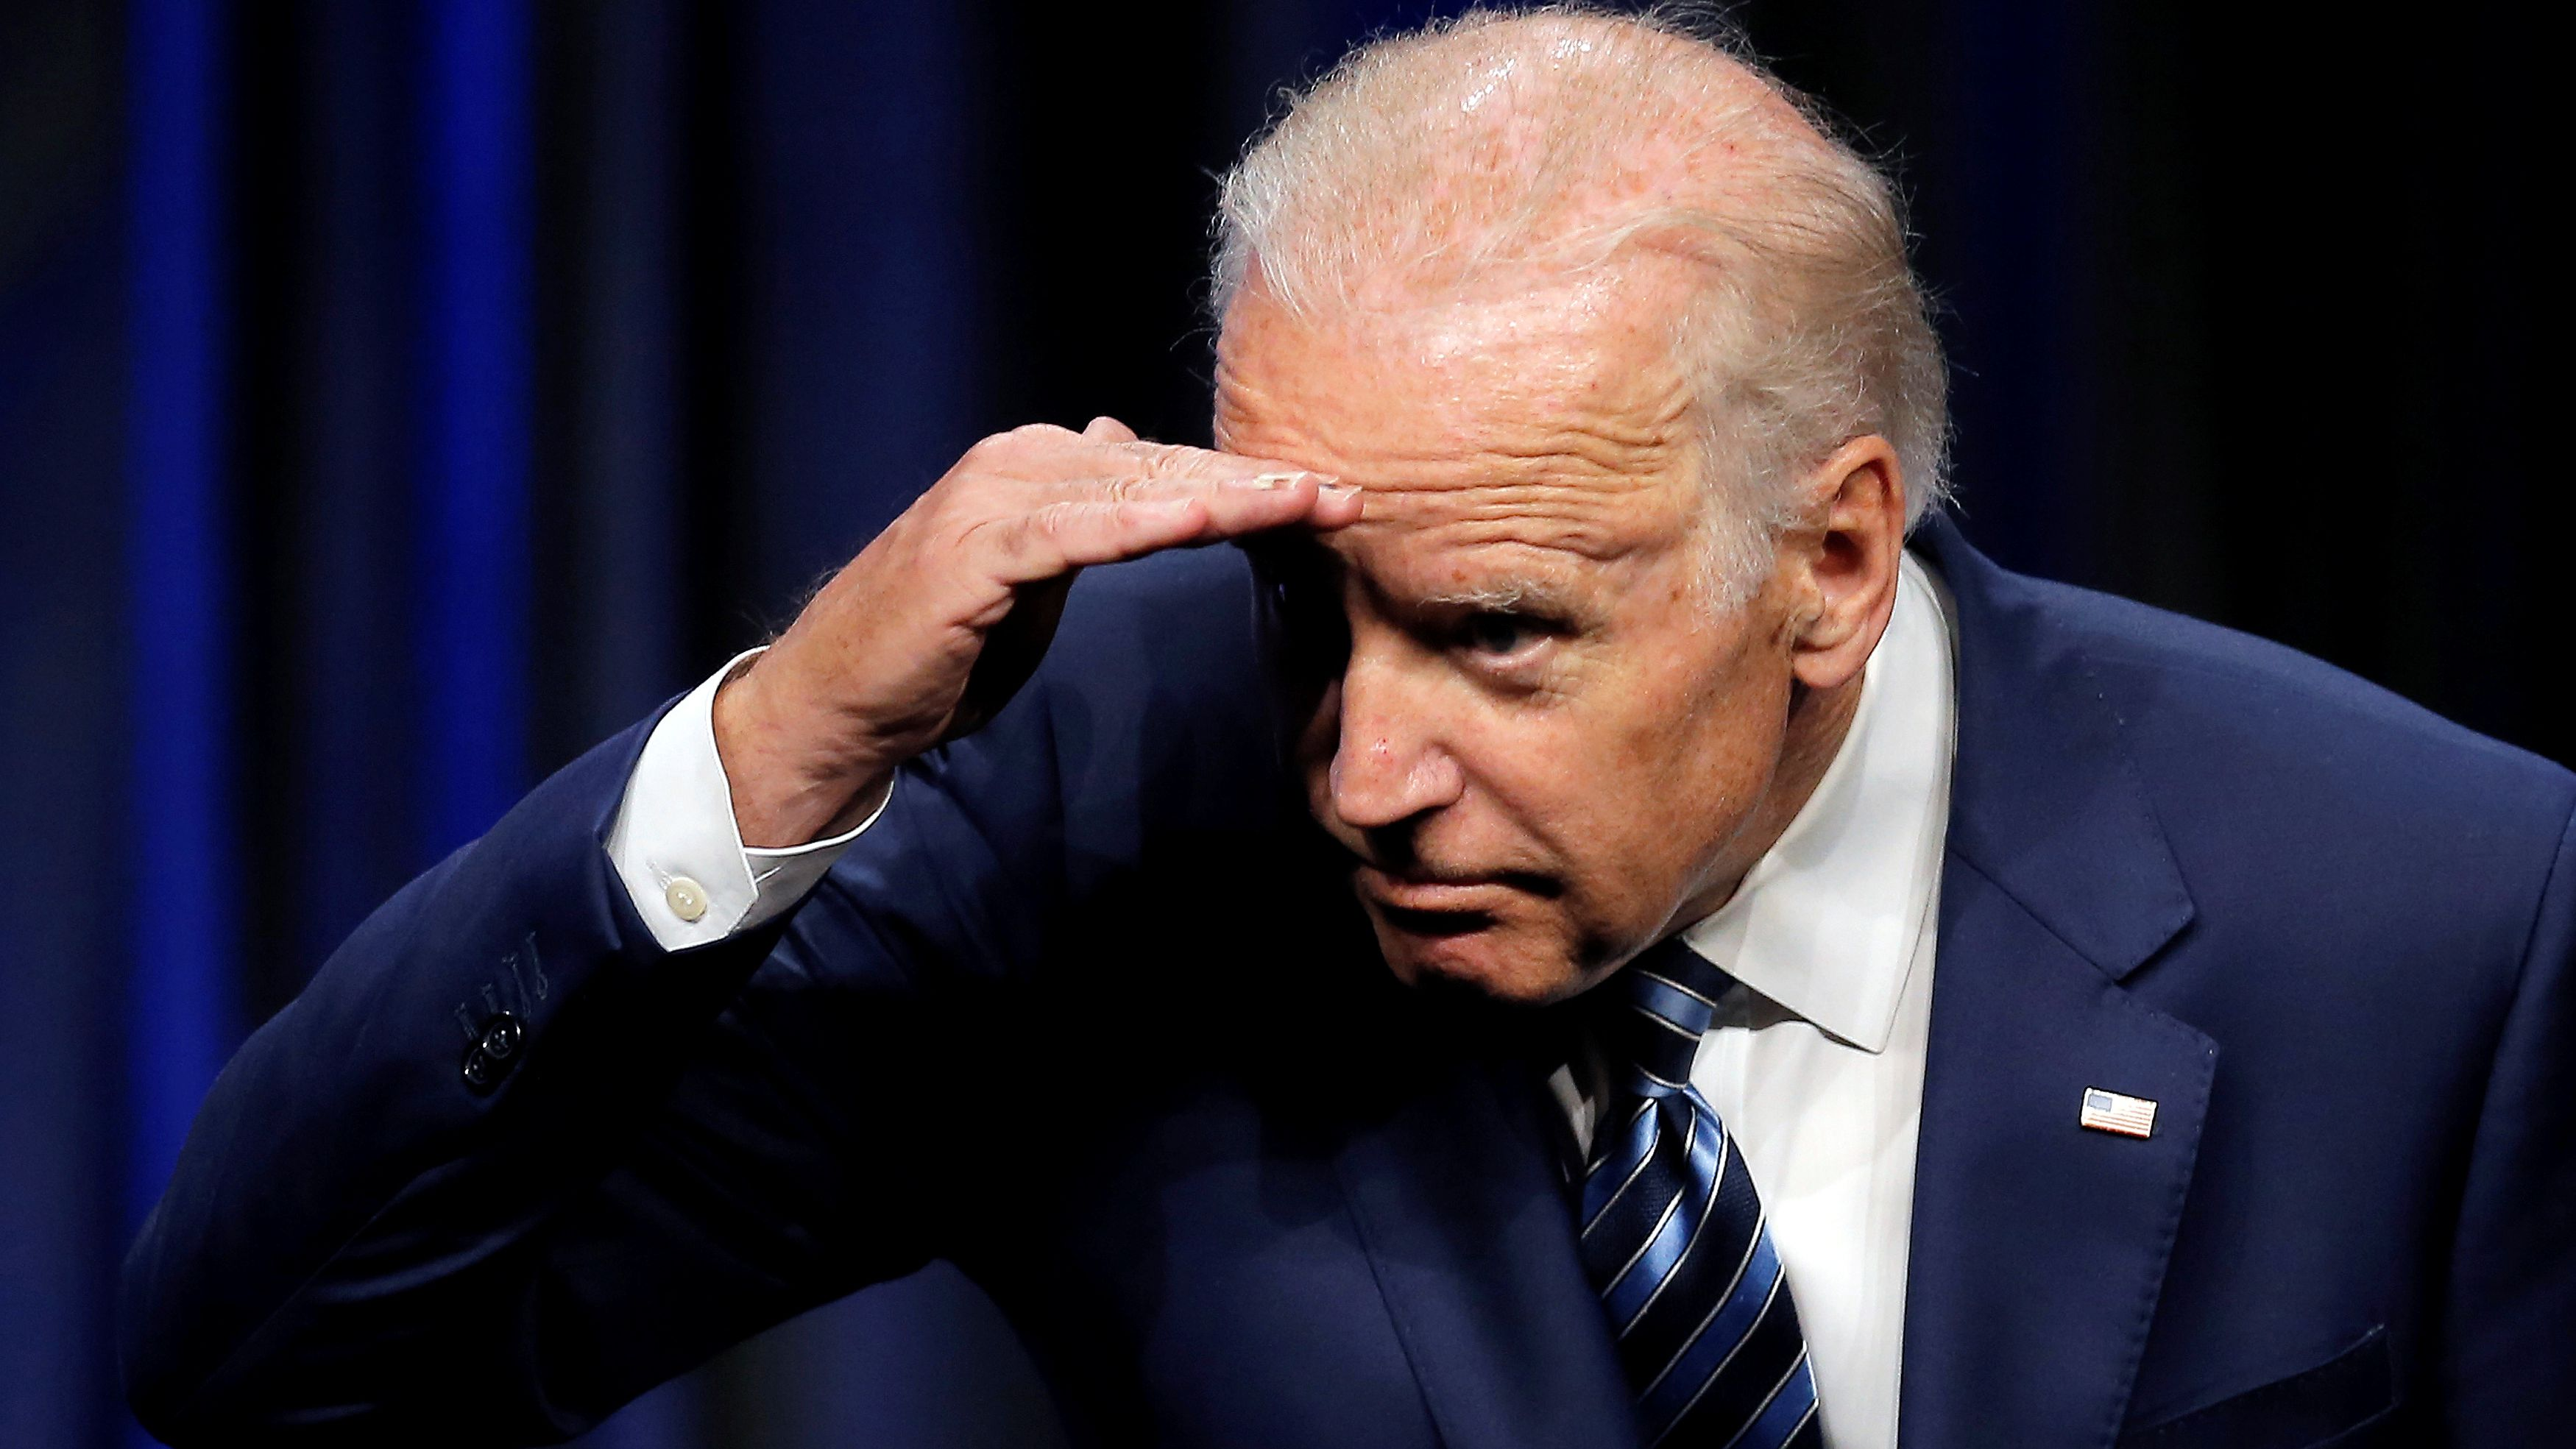 Joe Biden Says I Had Planned On Running For President This Year And Other Comments On Syria Globalization And The Tpp Quartz